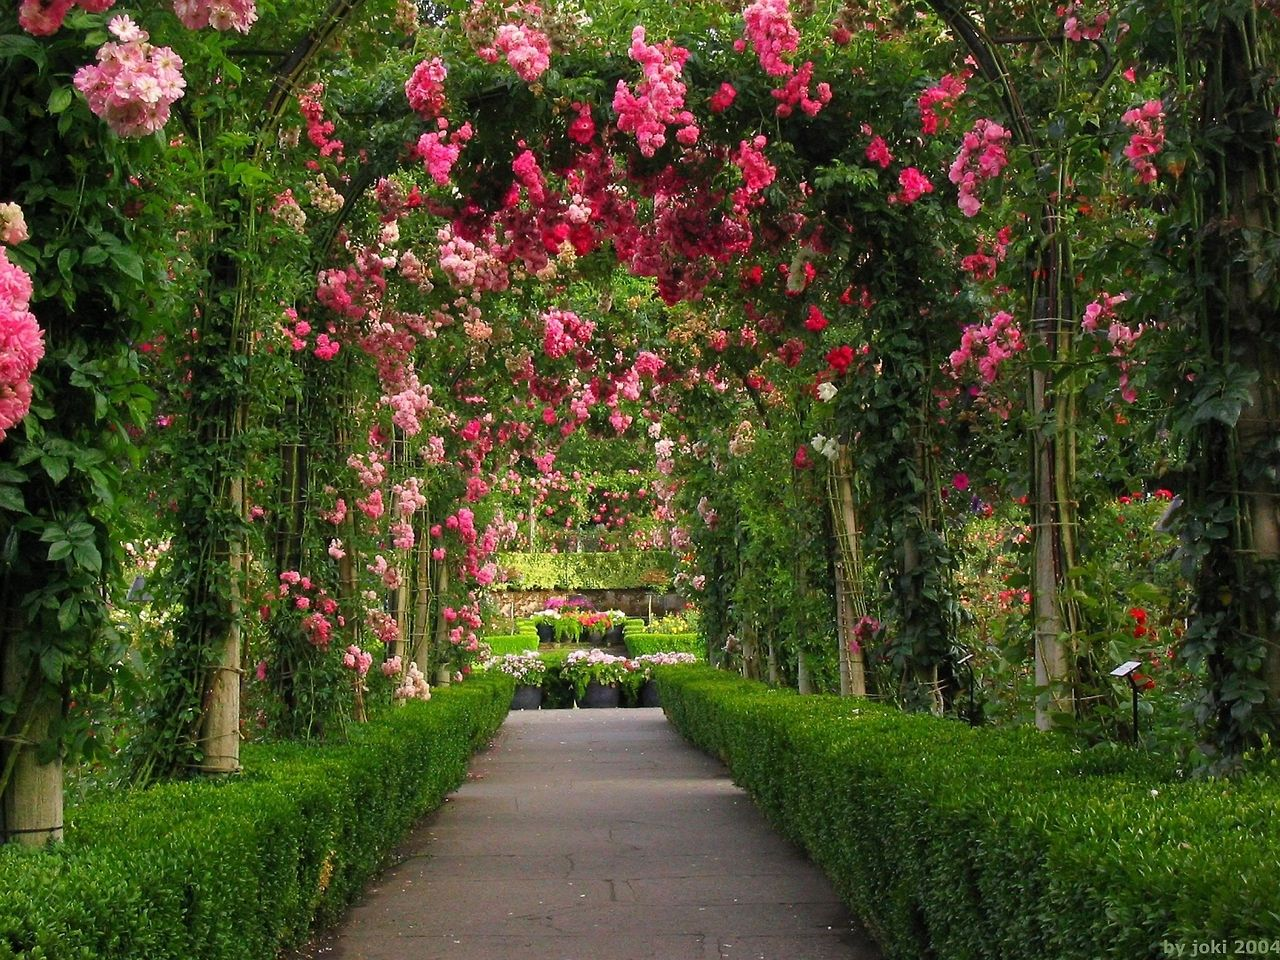 Beautiful rose gardens of the world - Kaneva Is The First To Combine Social Networking And A Free Virtual World It S A Whole New Way To Connect With Friends Have Fun In A Vibrant Virtual World